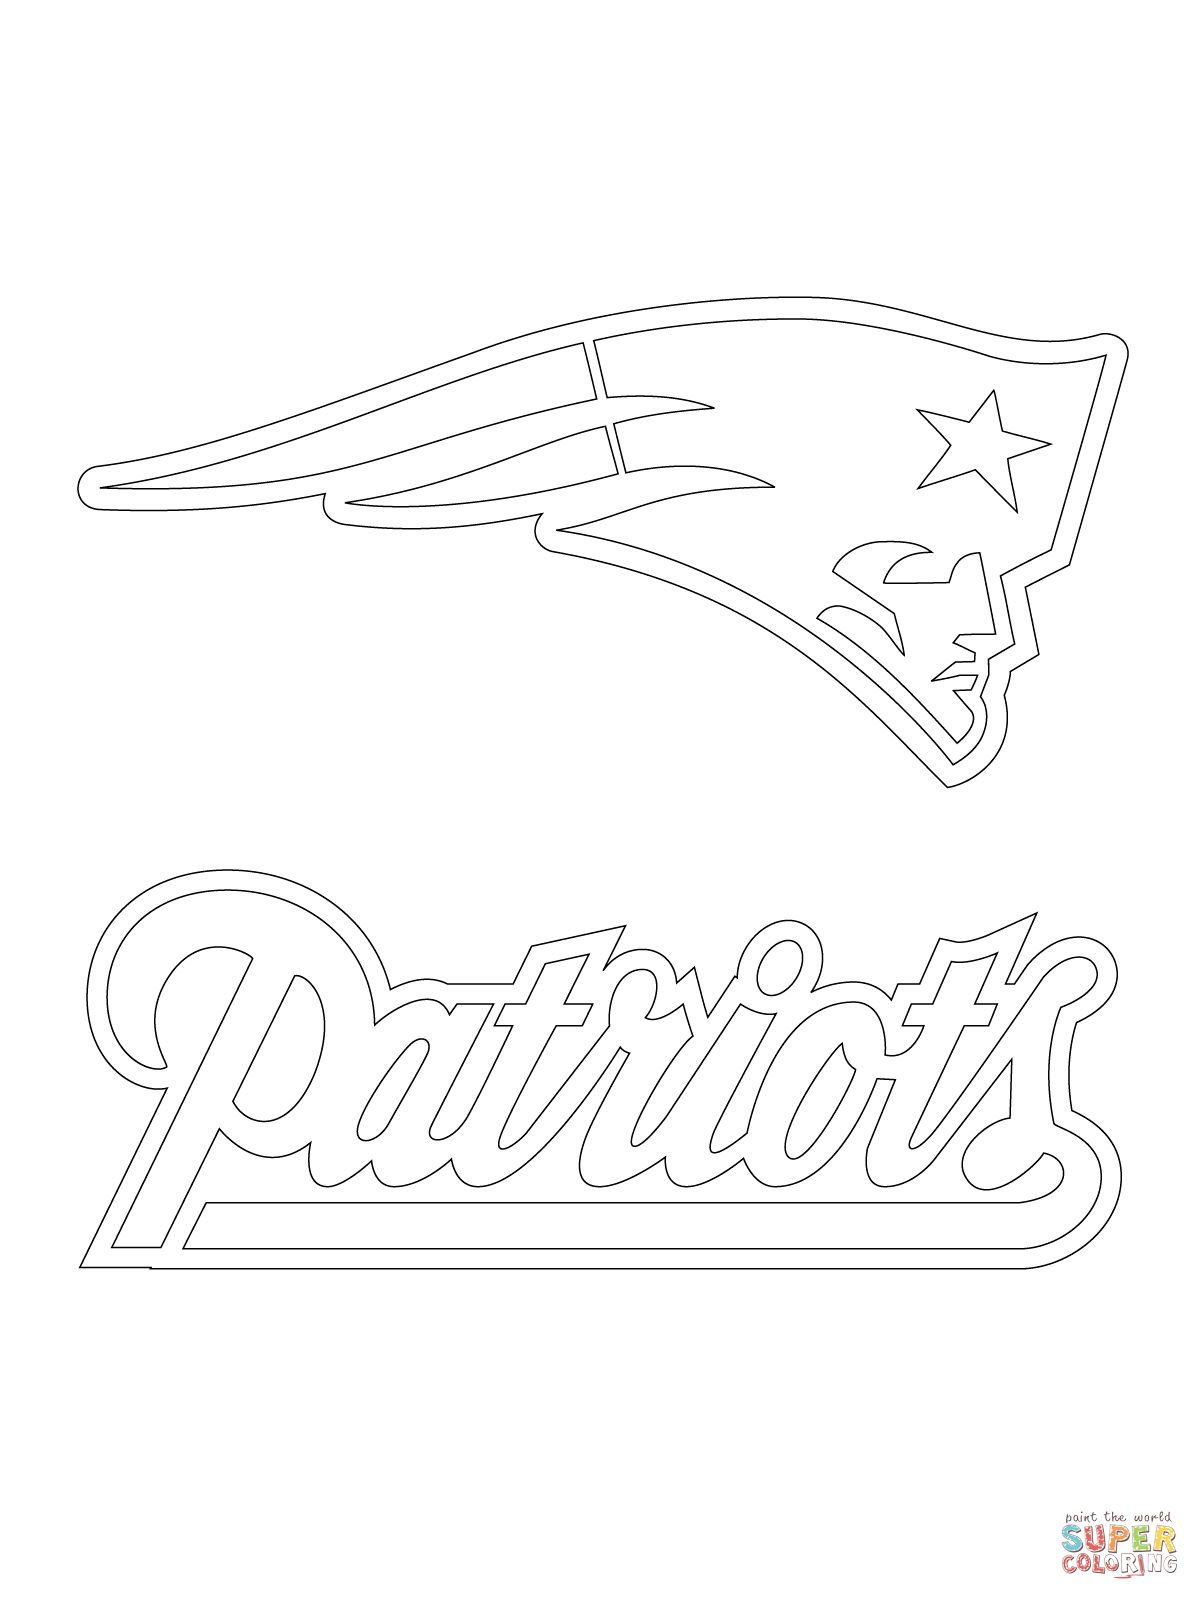 patriots coloring pages new england patriots coloring pages coloring home pages coloring patriots